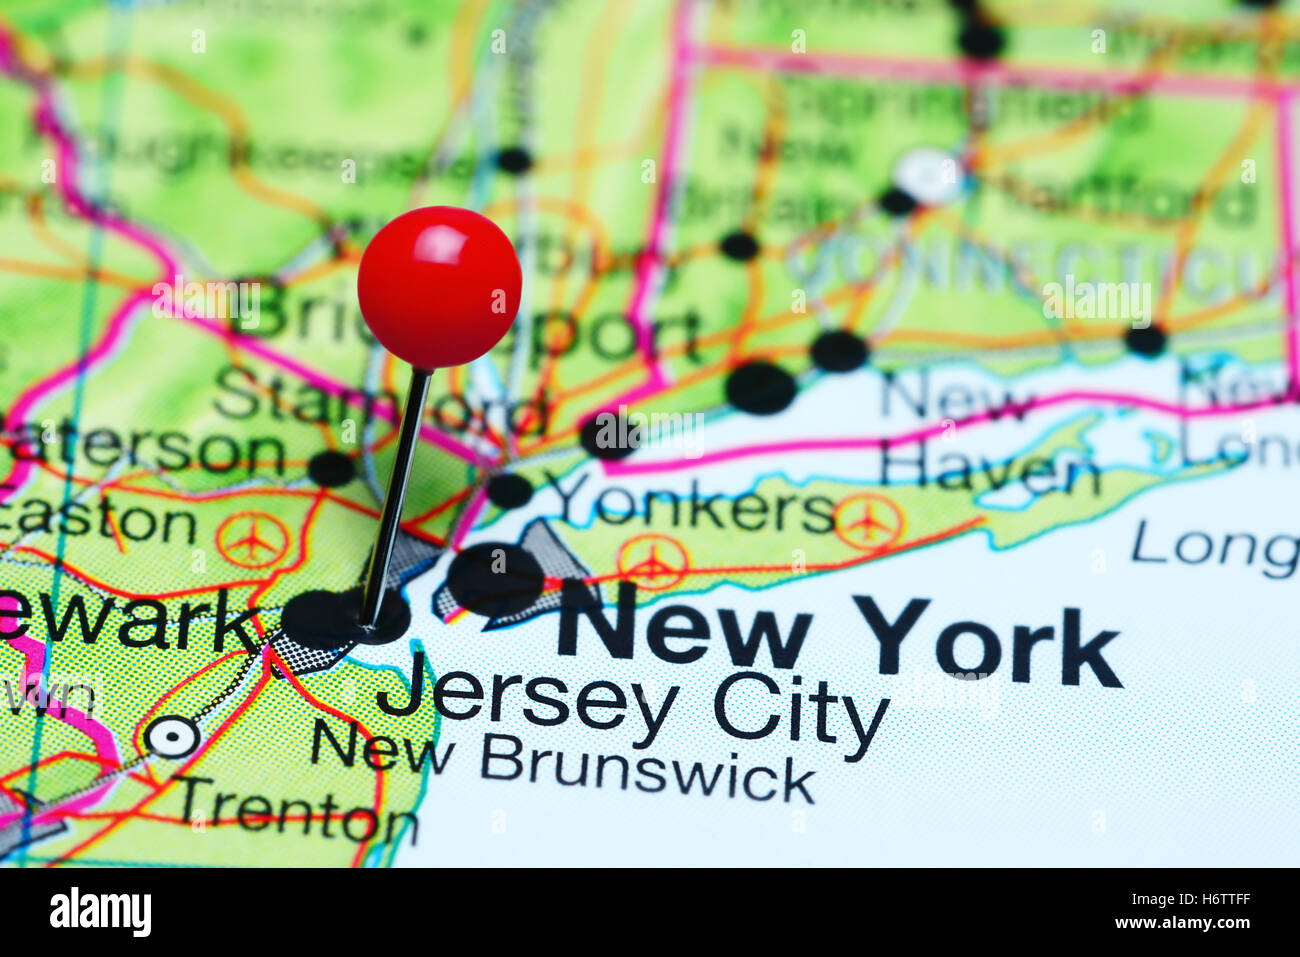 New Jersey On Map Of Usa.Jersey City Pinned On A Map Of New Jersey Usa Stock Photo